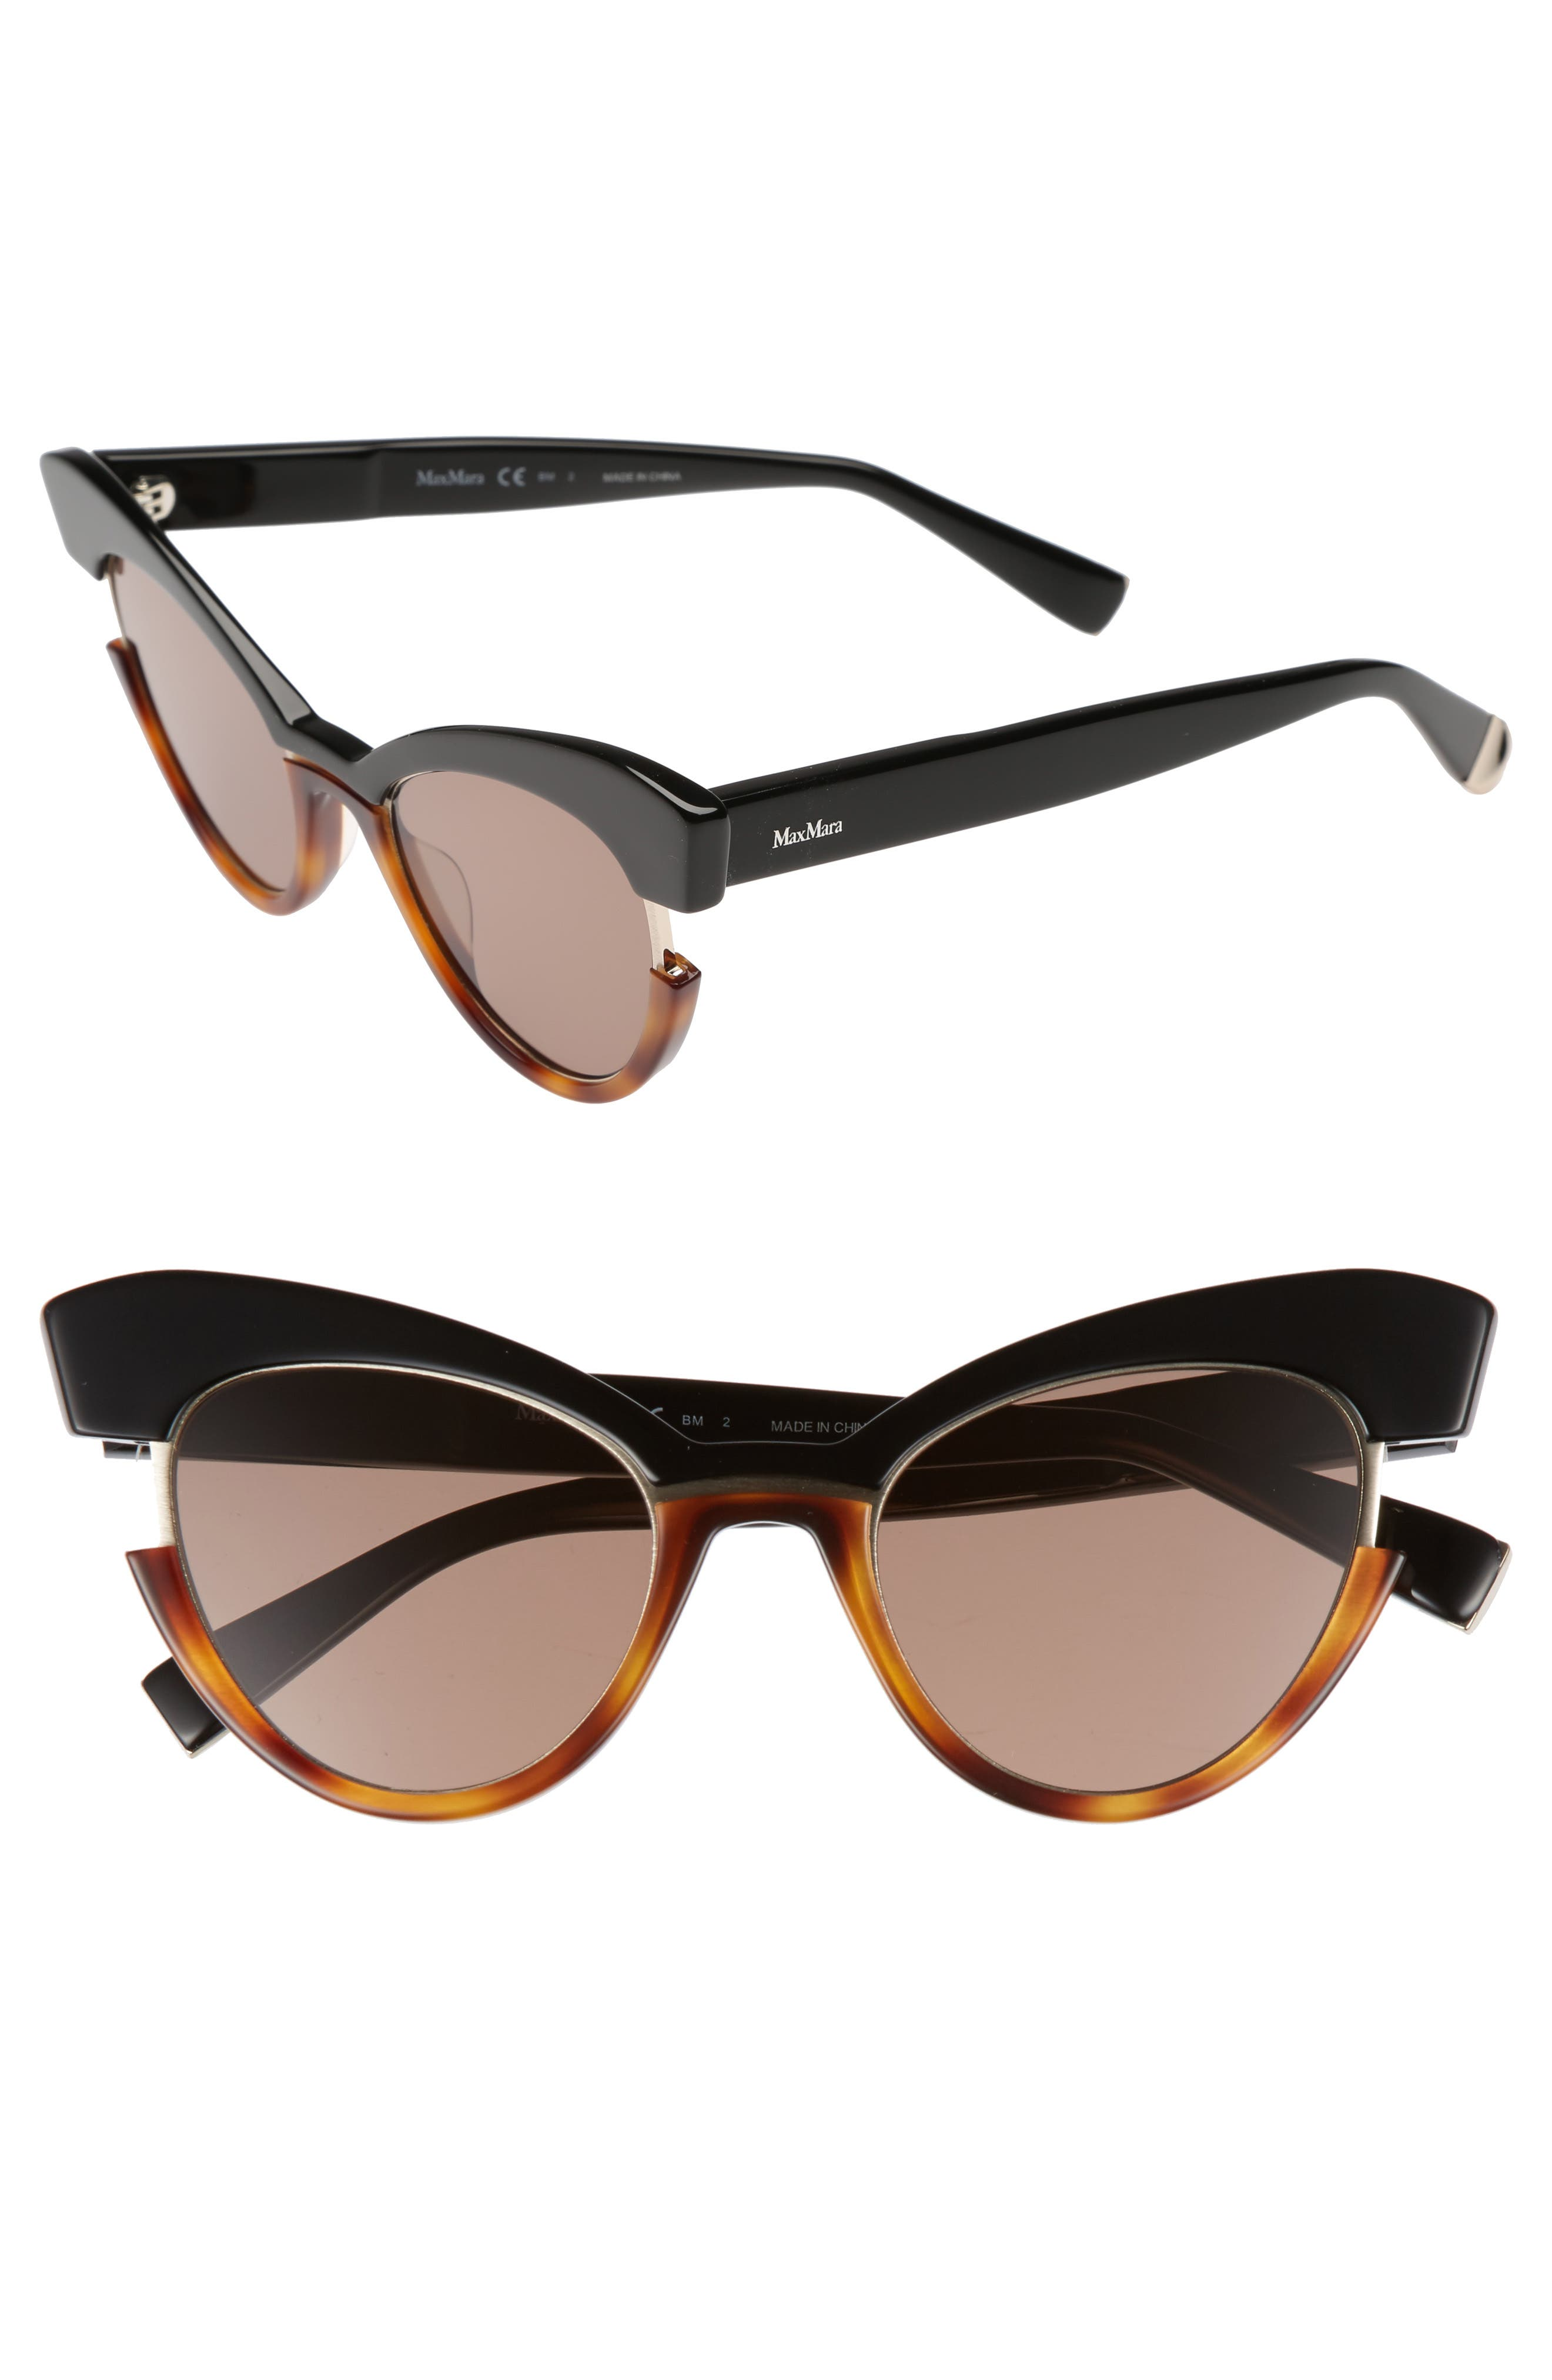 49mm Gradient Lens Cat Eye Sunglasses,                         Main,                         color, BLACK HAVANA